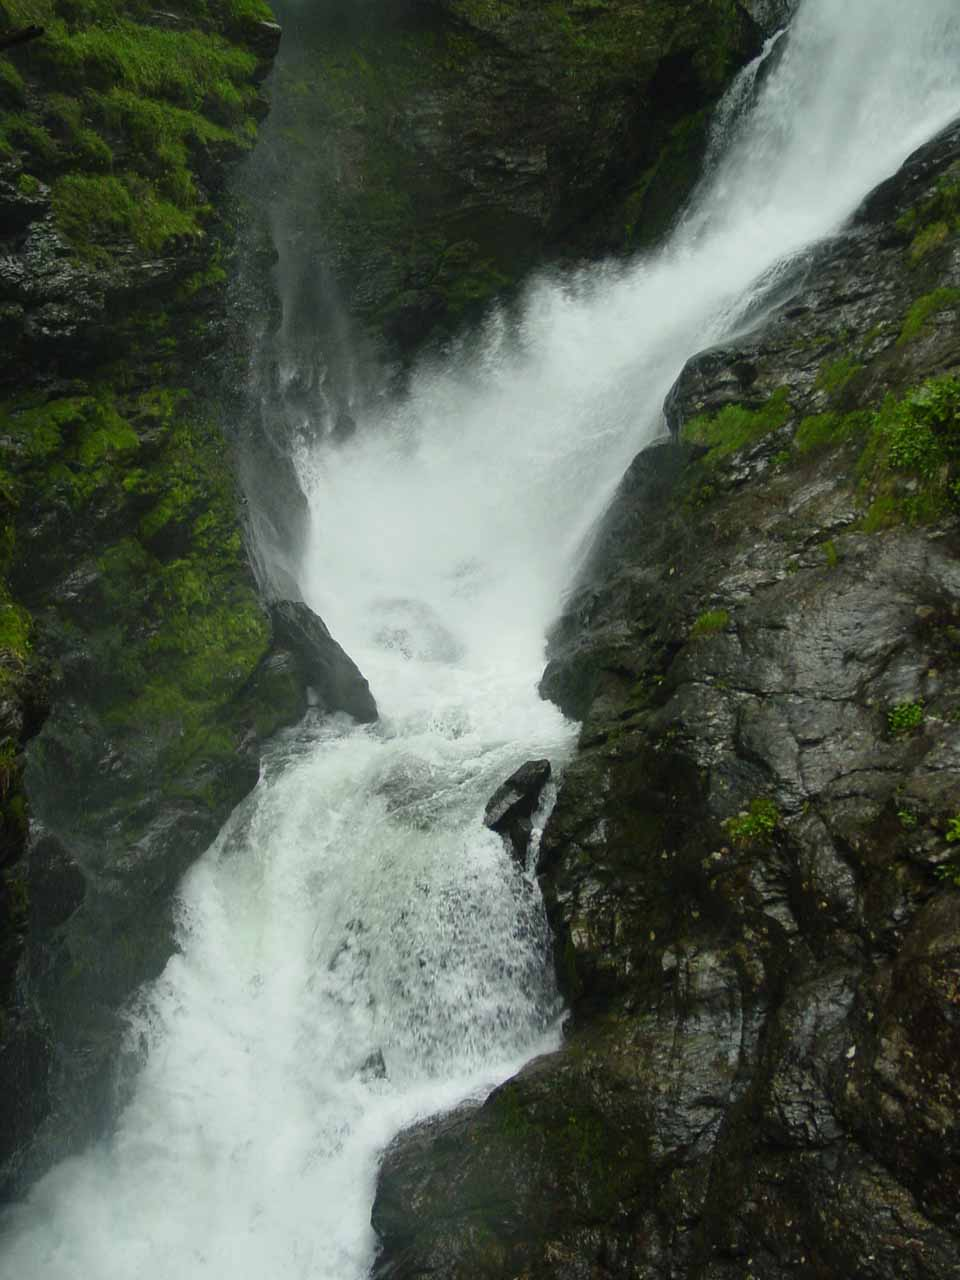 Closer examination of Svandalsfossen as we were walking up the steps to get back up to the surface of Rv520